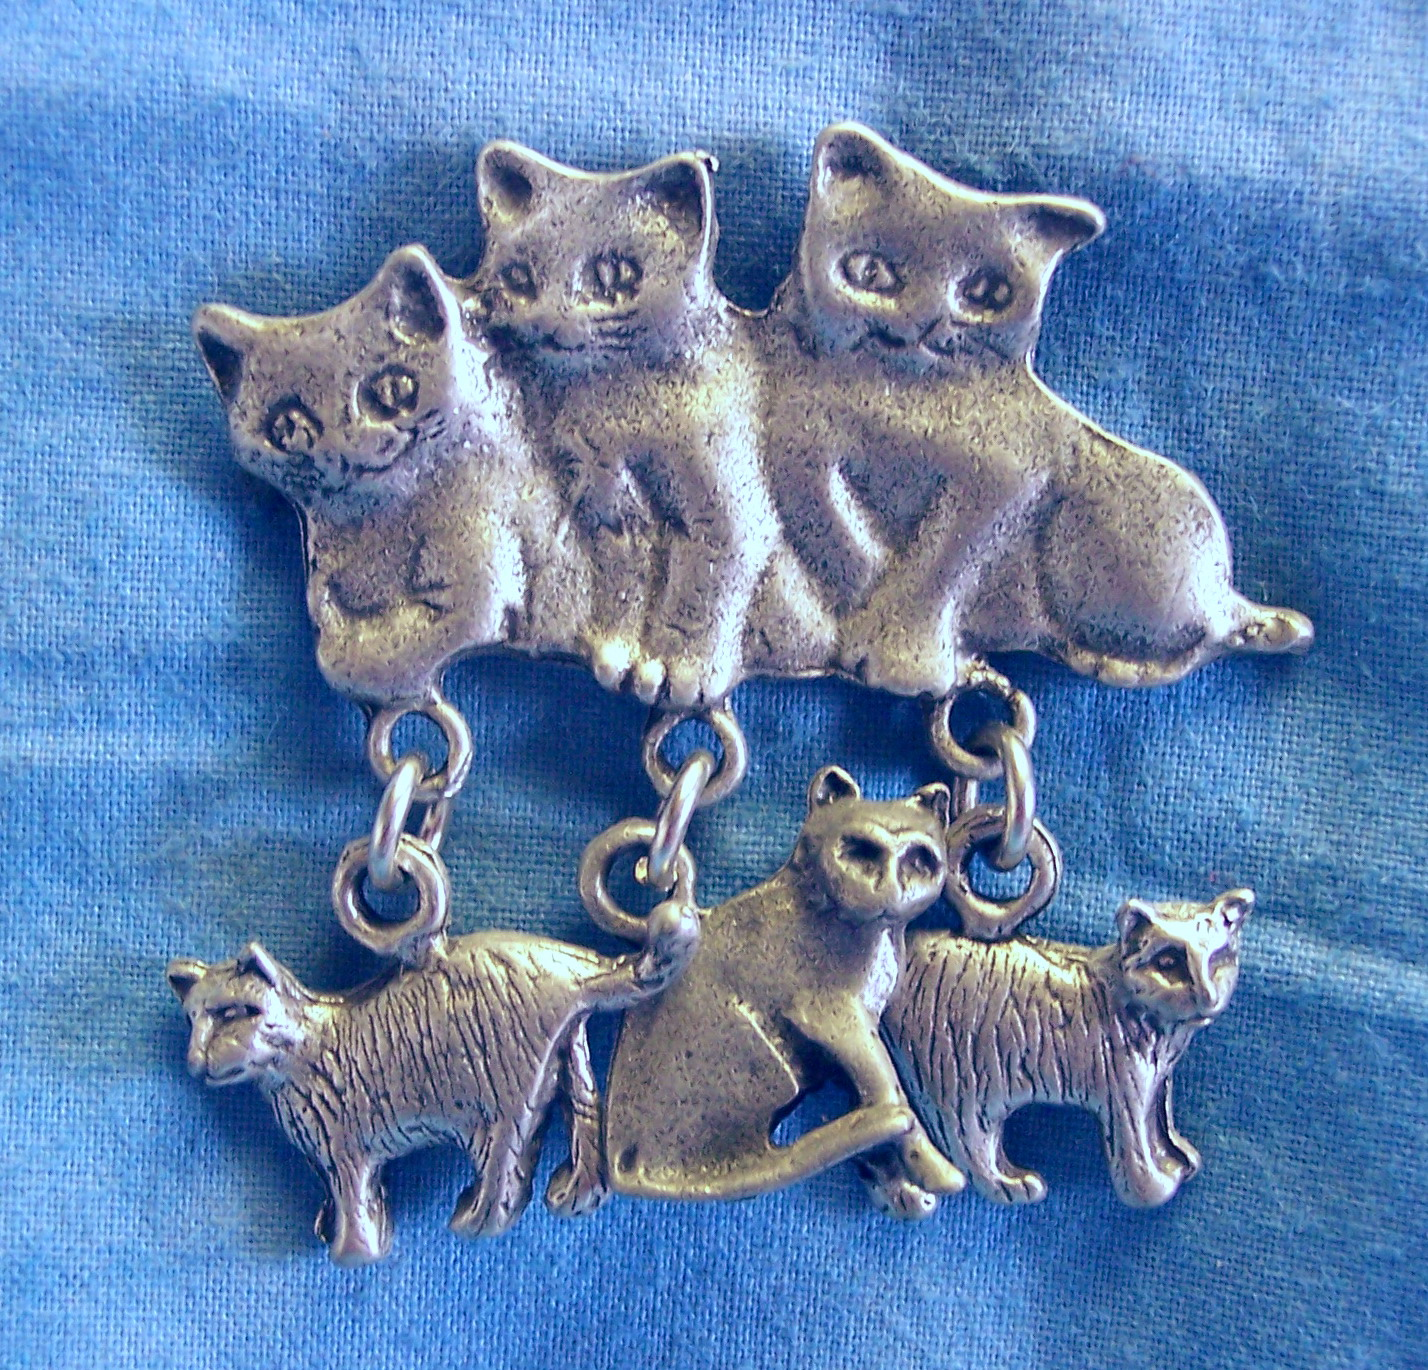 Great 03215x 3 Kittens With Dangles Clutch Back Pin 1 1/8u2033 X 1 1/4u2033 Solid Lead  Free Pewter $25.00